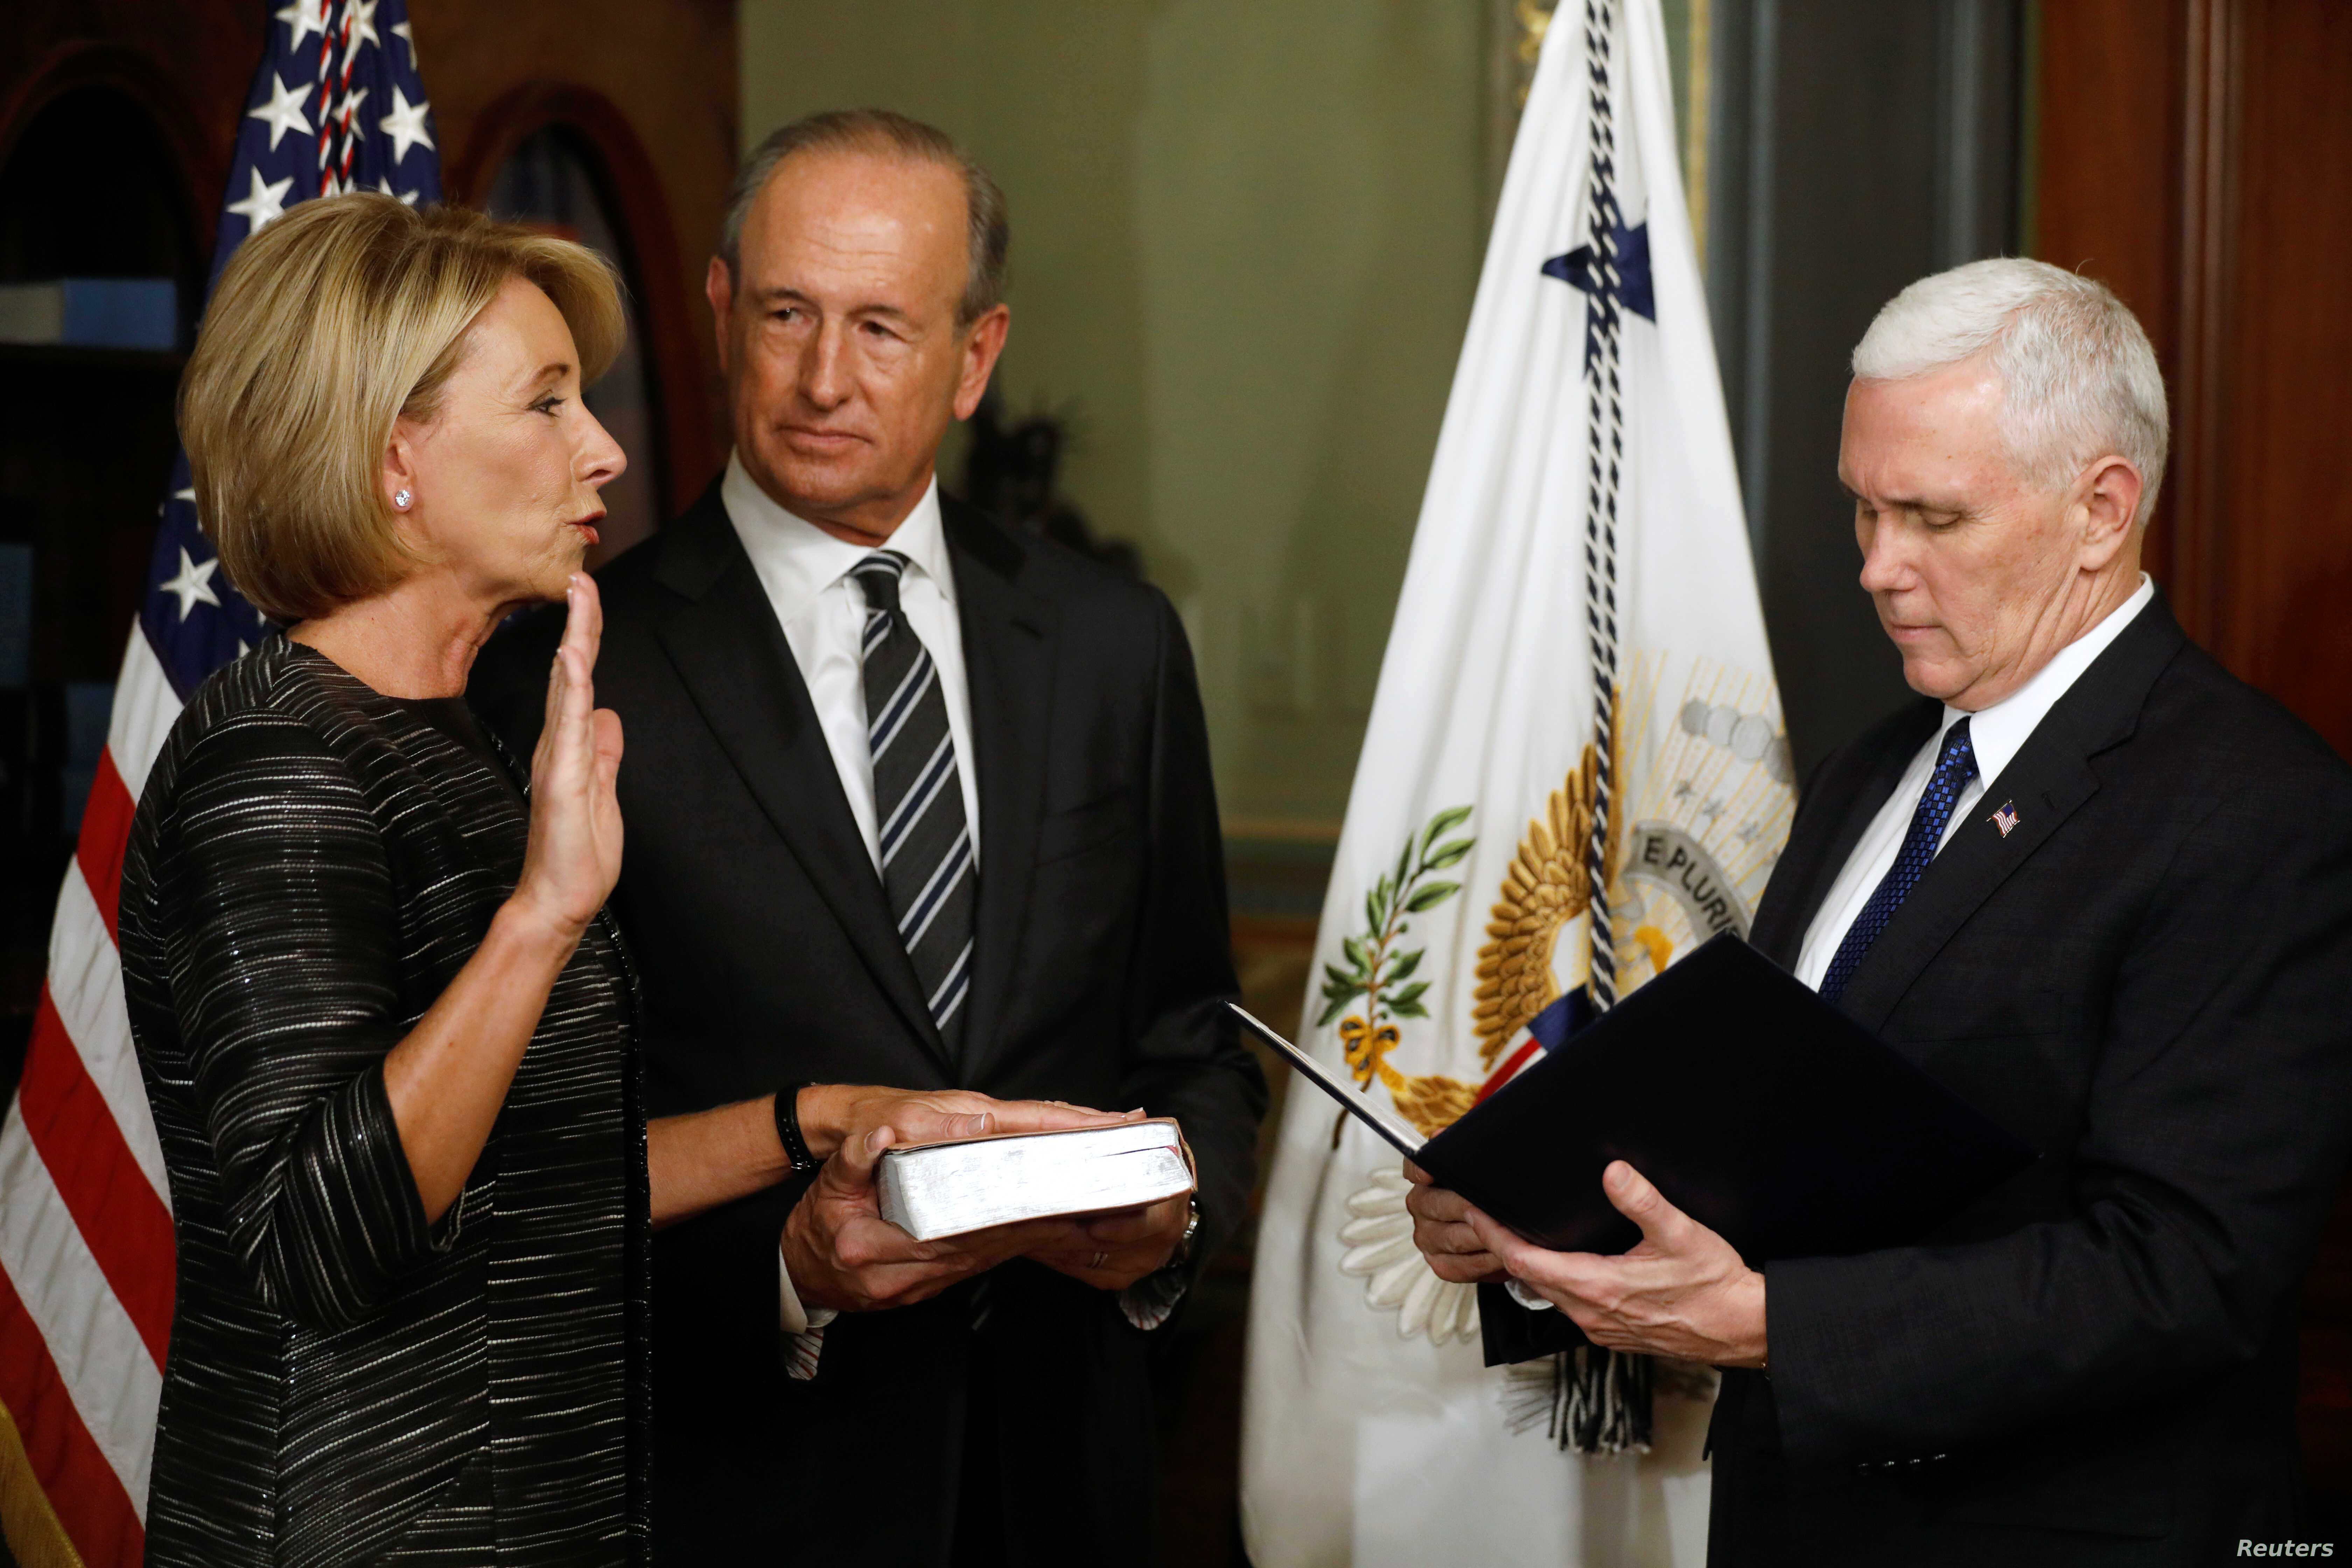 Betsy Devos Trumps Education Pick Plays >> Trump Playing Catch Up To Fill Top Government Posts Voice Of